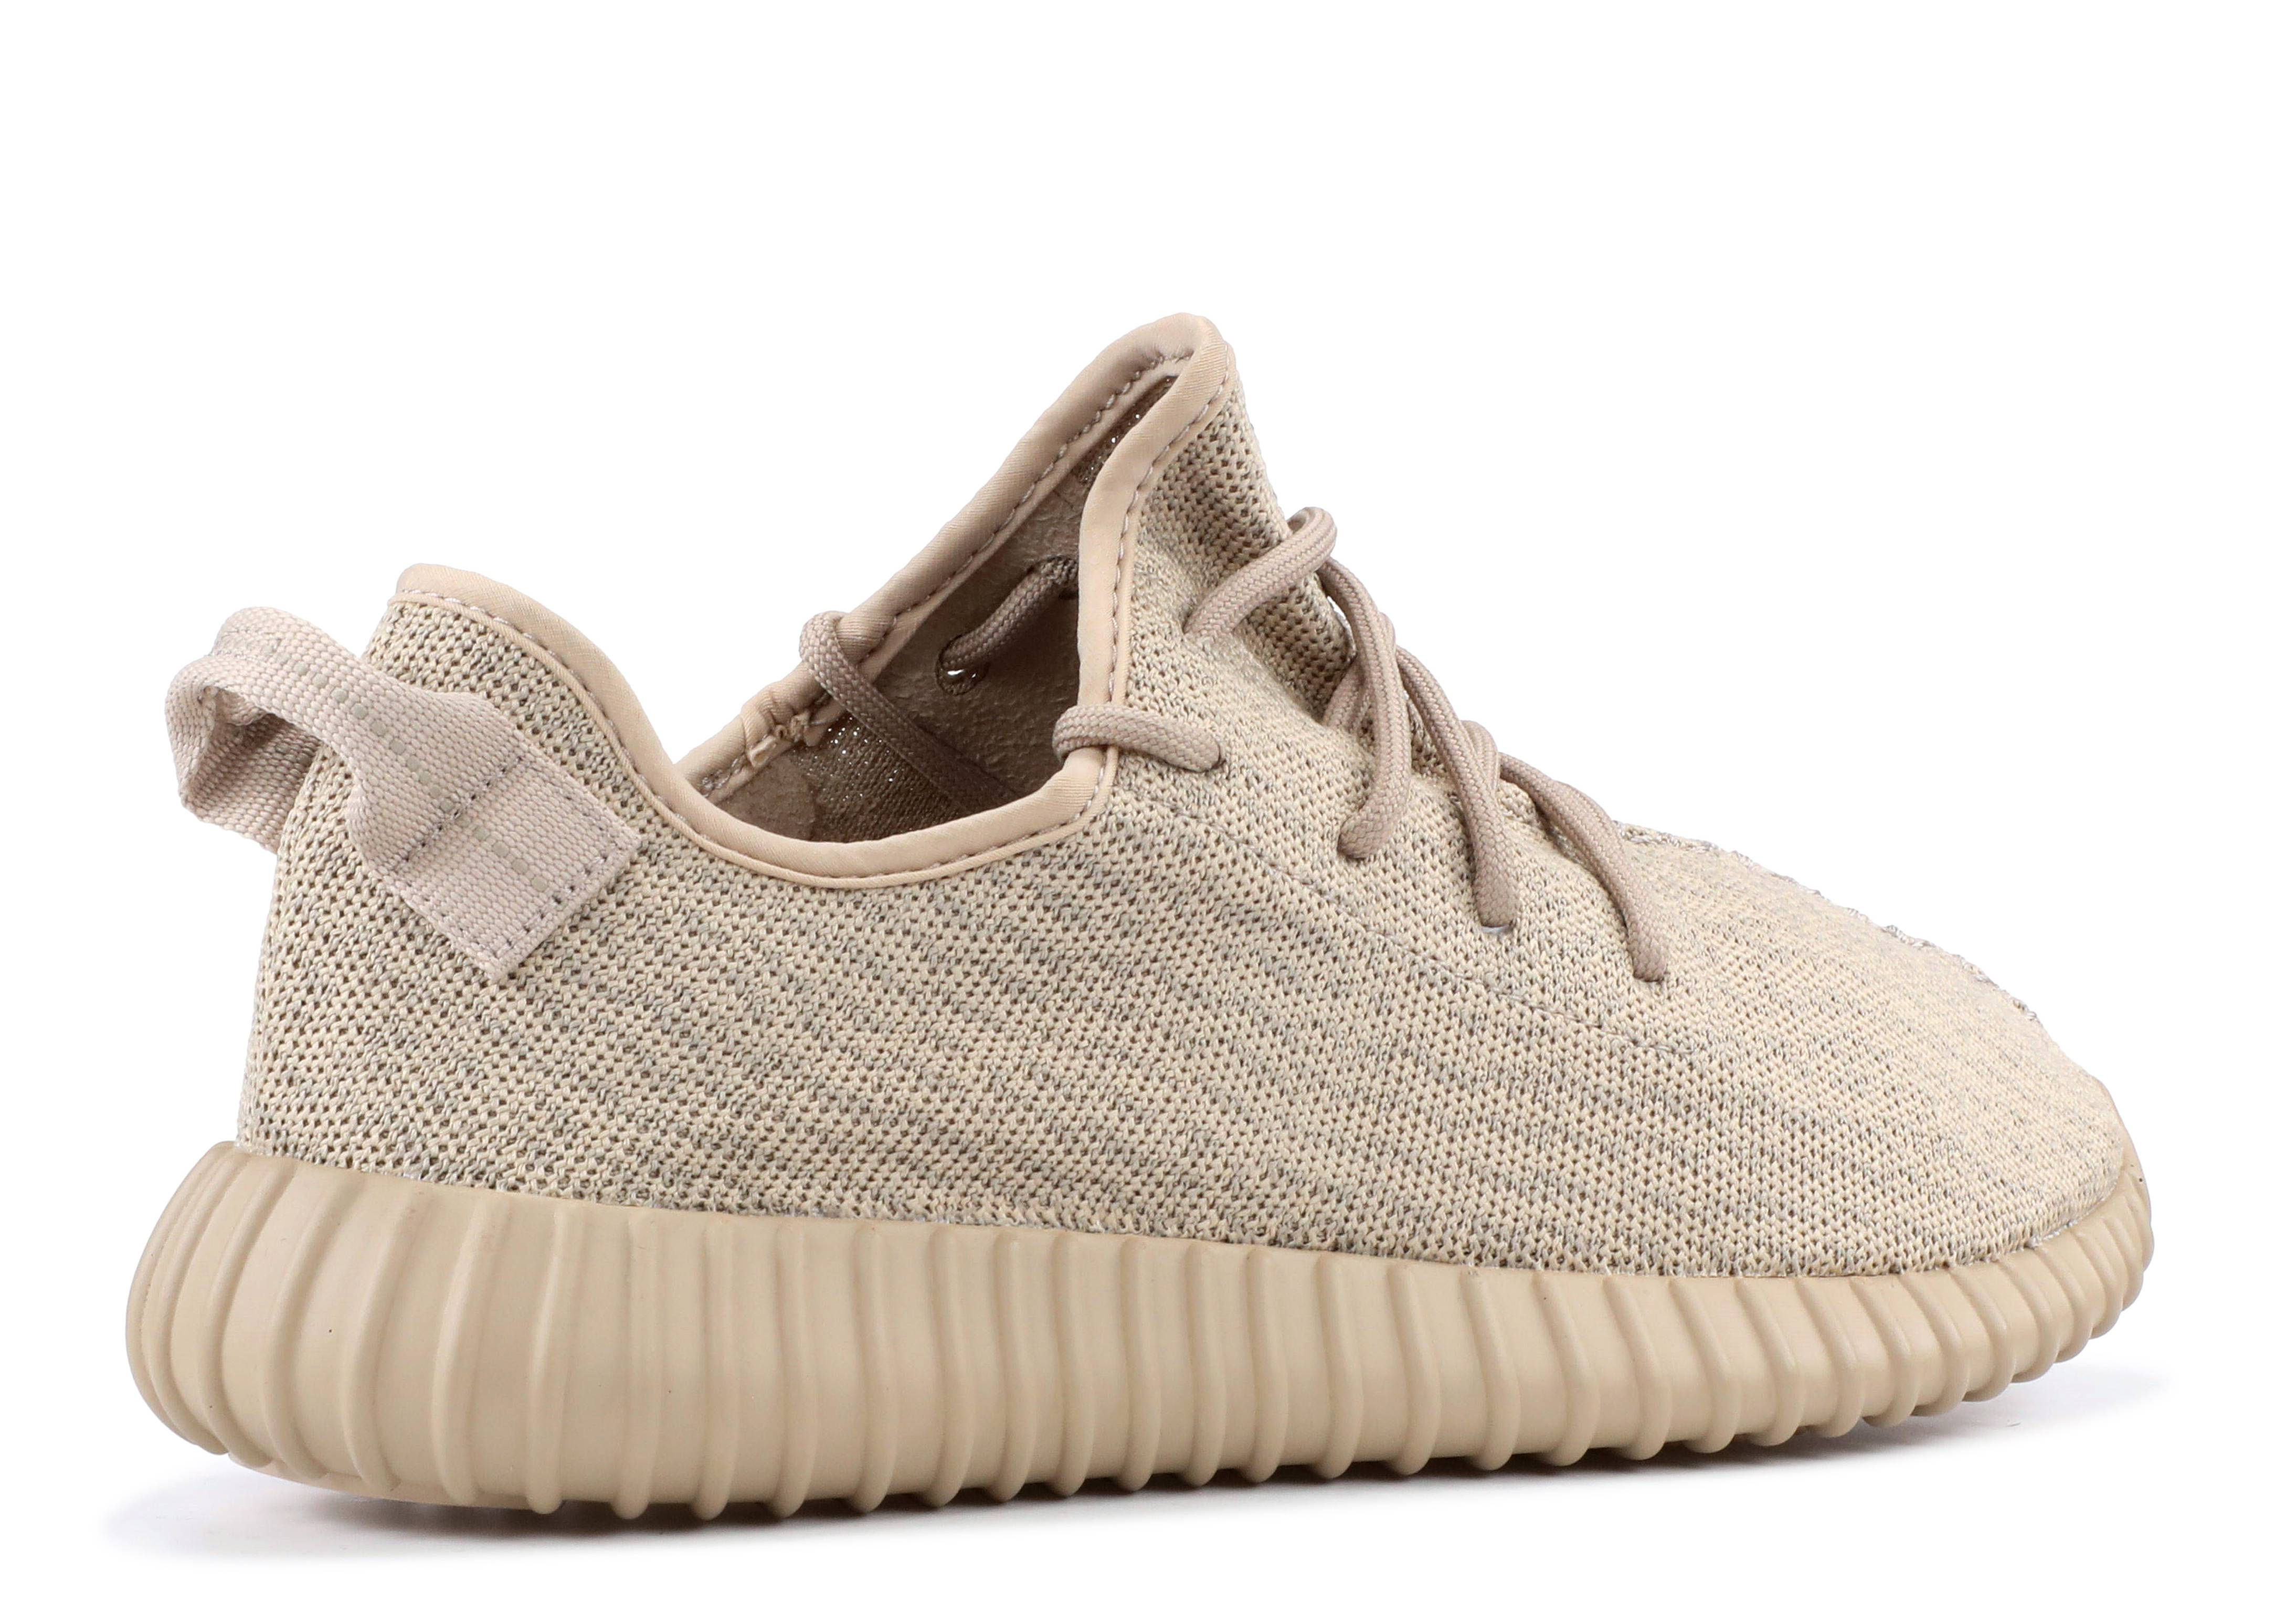 adidas Yeezy Boost 350 Sz 7.5 Oxford Tan Aq2661 100 Guaranteed